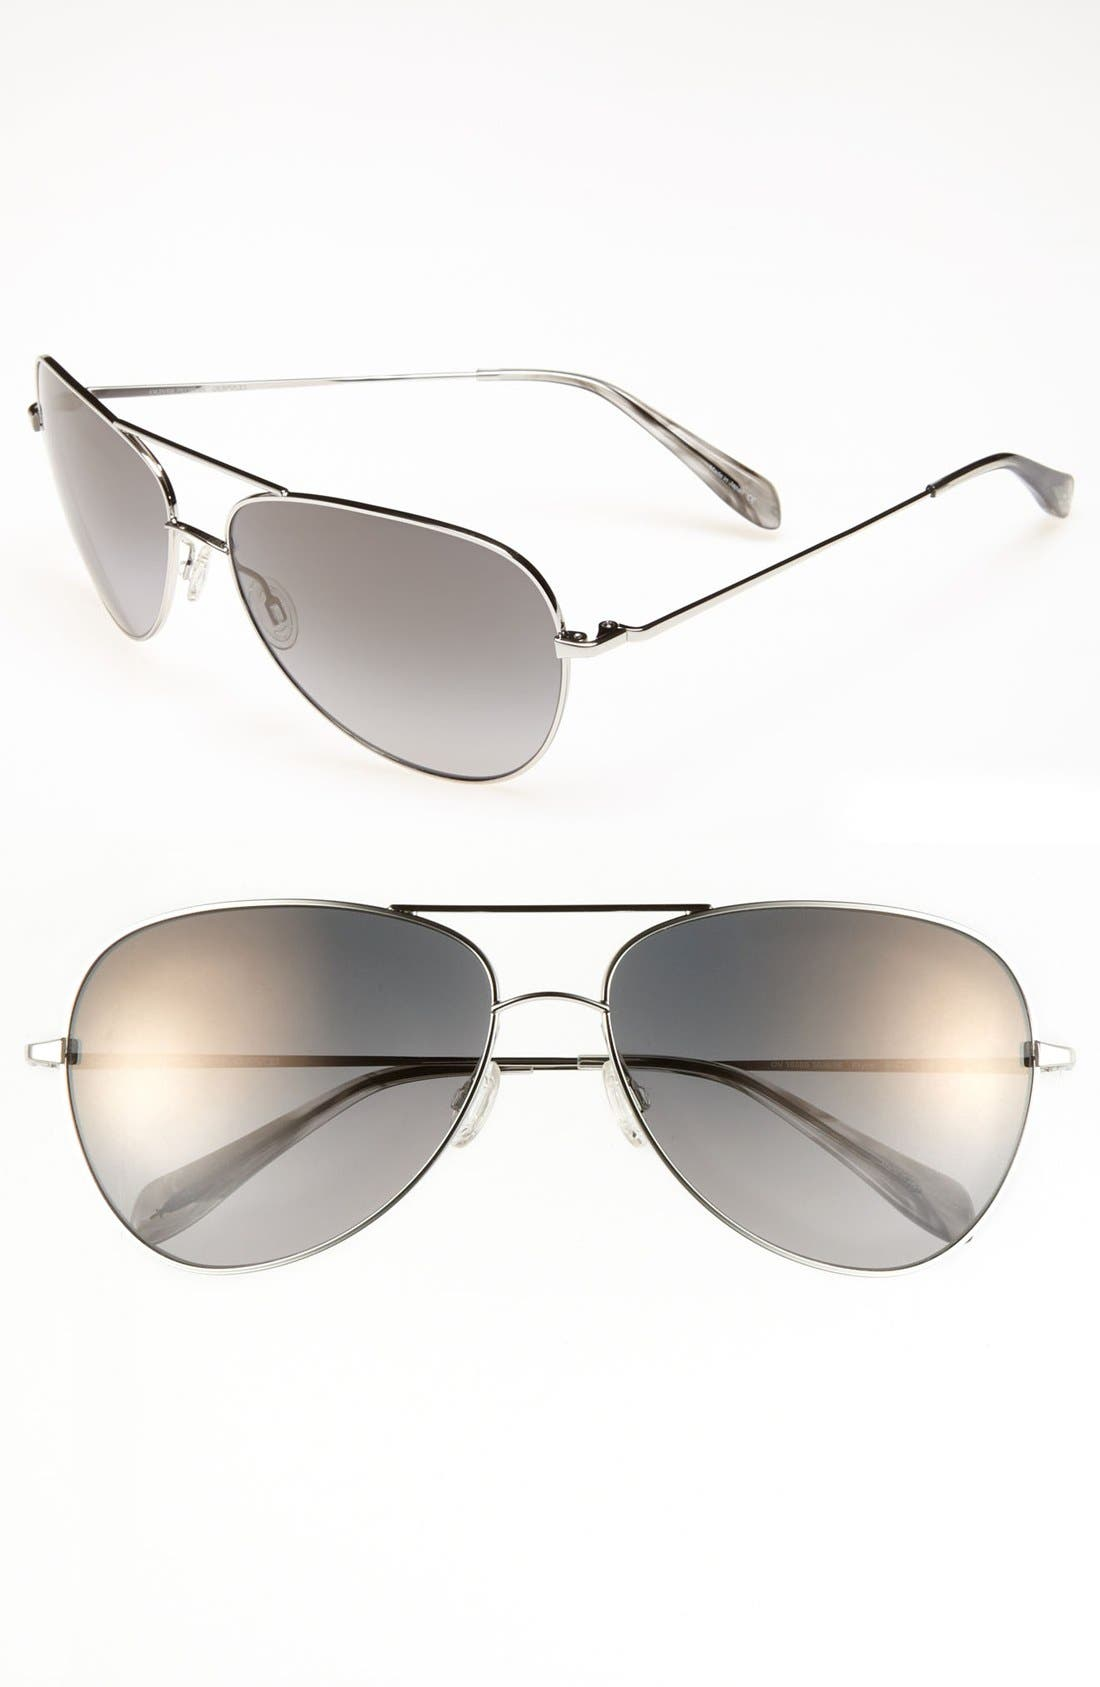 Alternate Image 1 Selected - Oliver Peoples Polarized Aviator Sunglasses